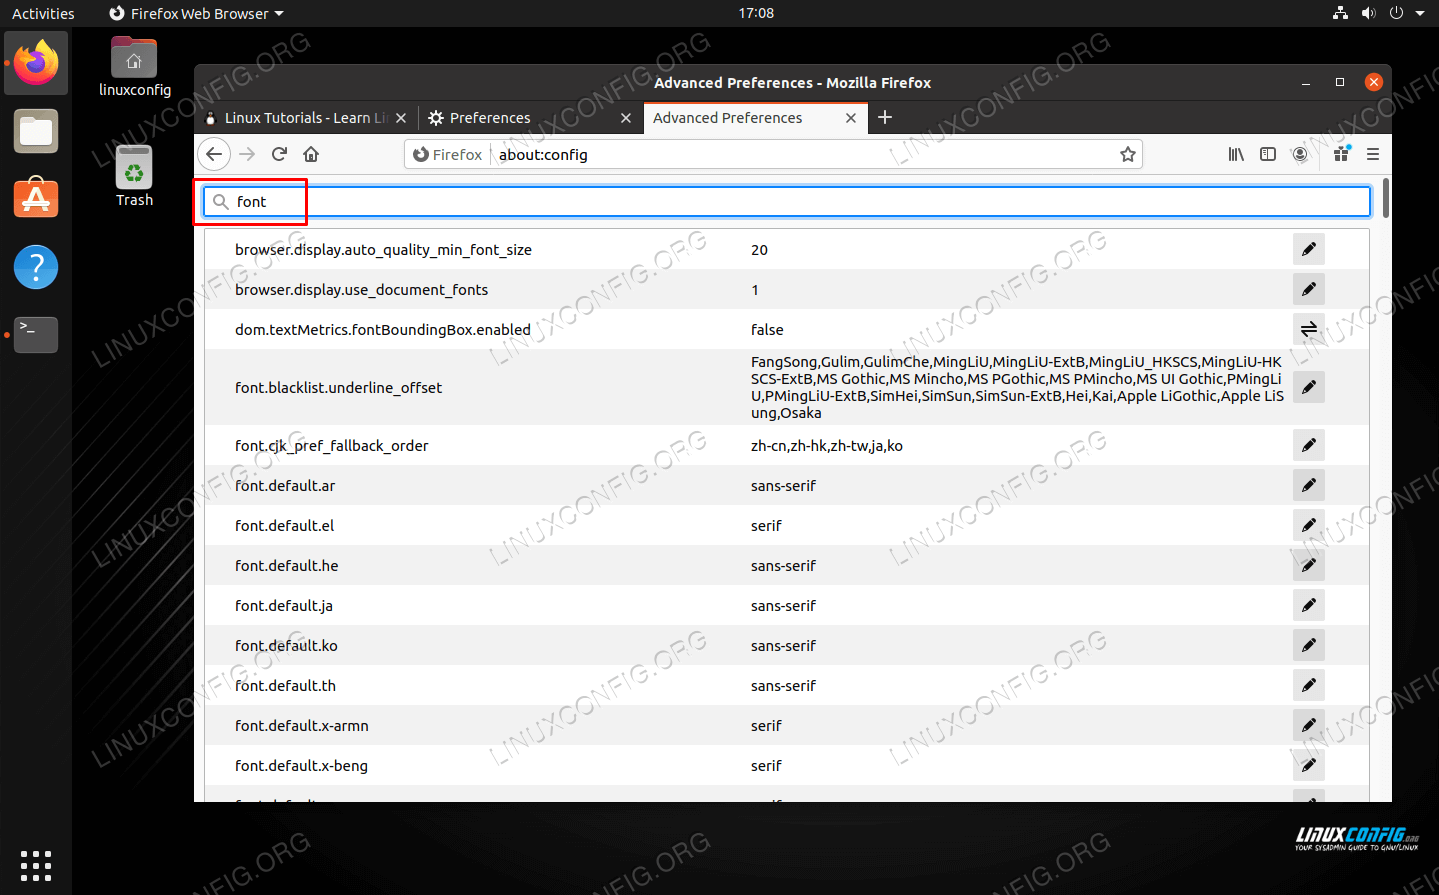 All font related settings in the Advanced Preferences menu